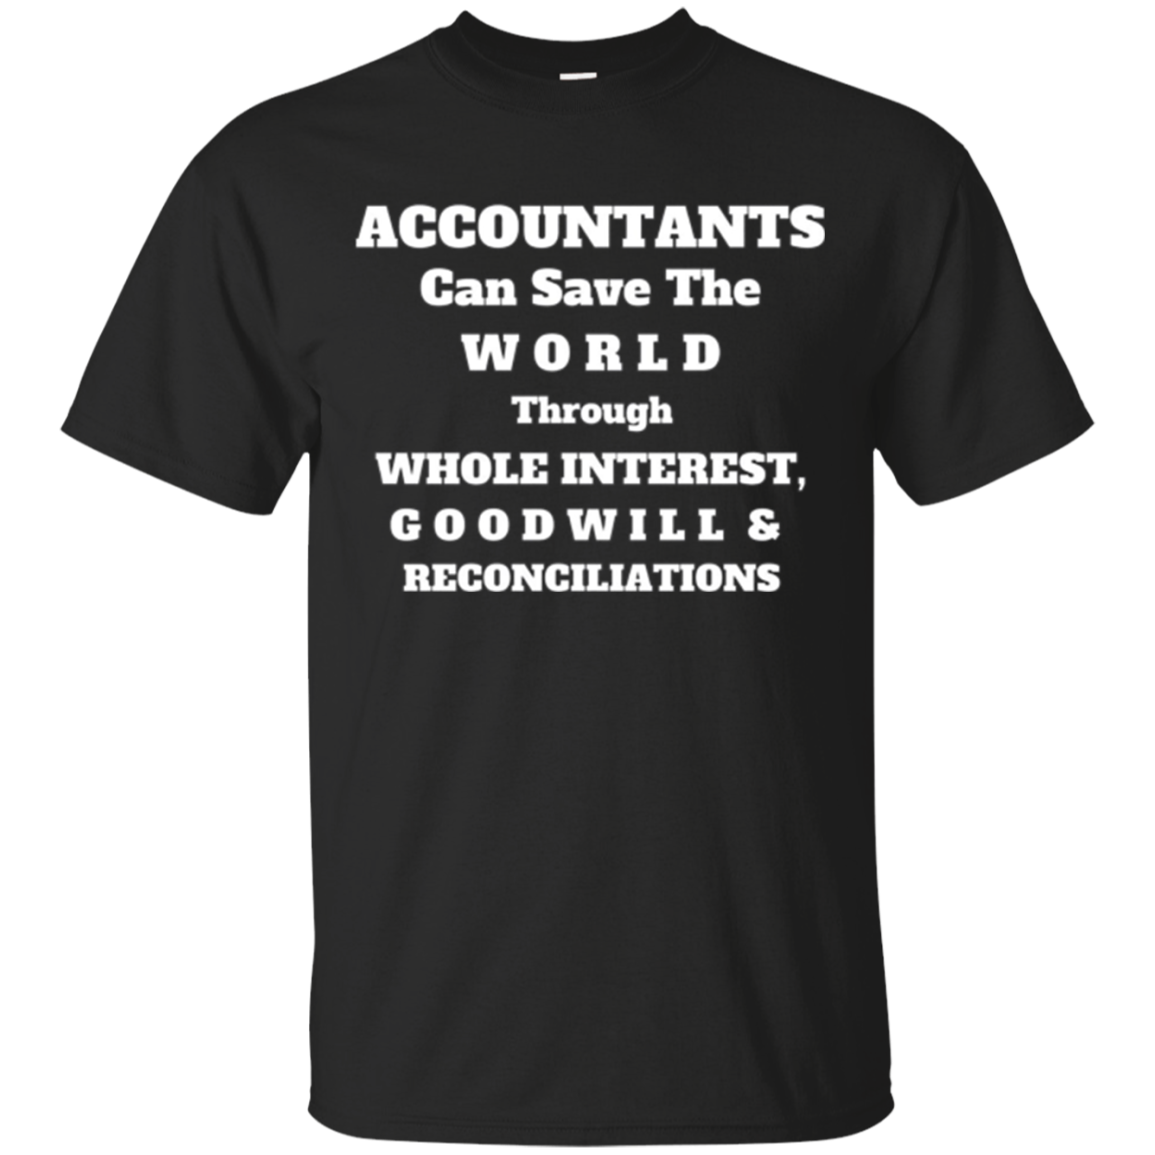 Accountants Can Save The World - Funny Accounting Pun Tshirt